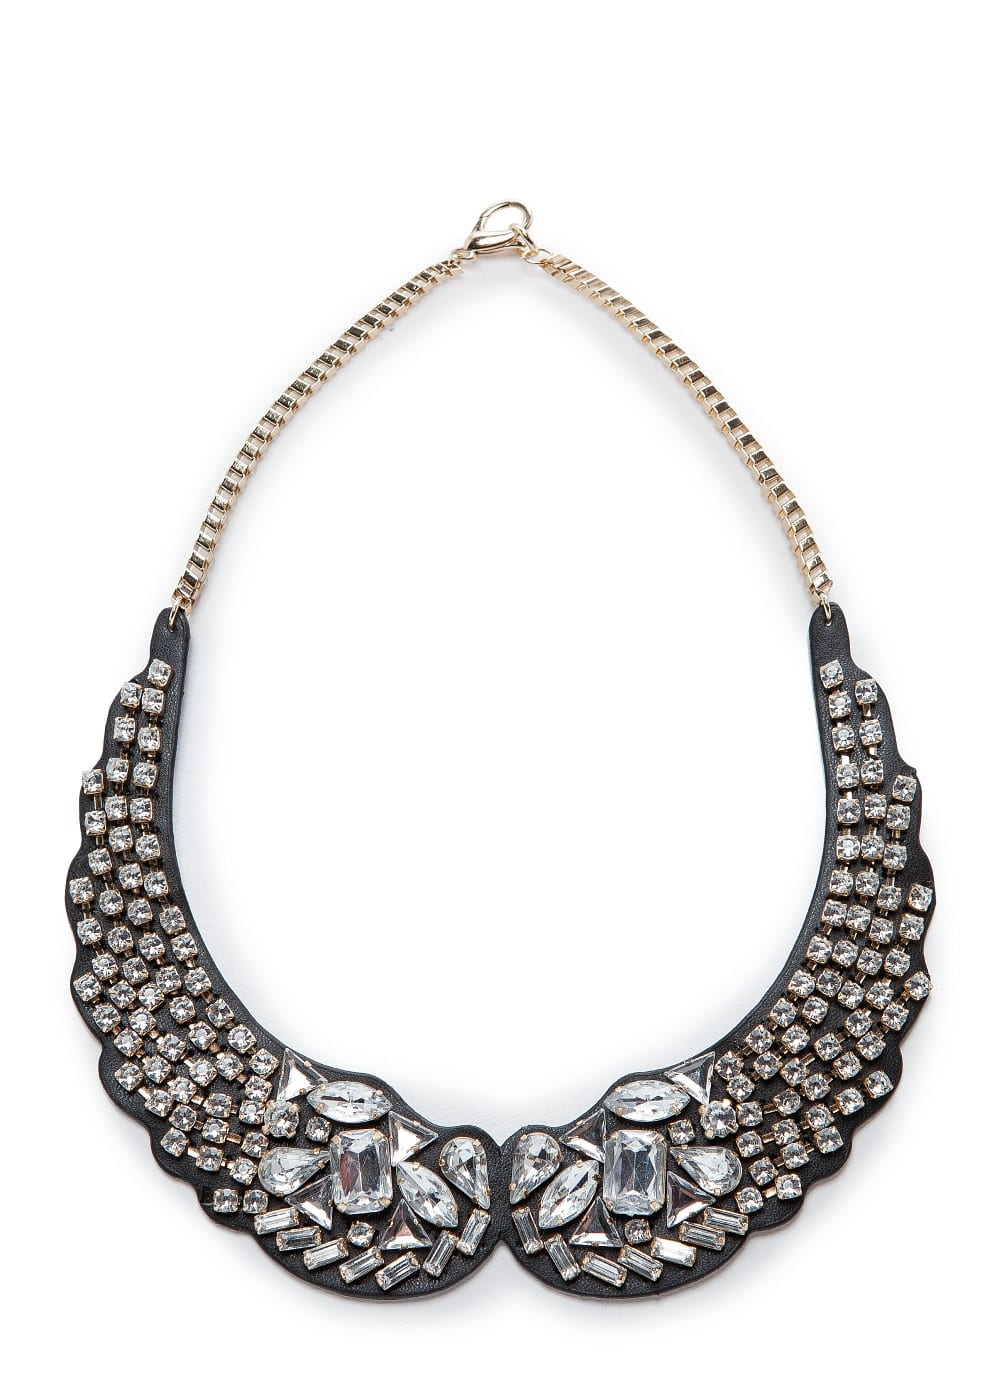 Crystal embellished bib-necklace